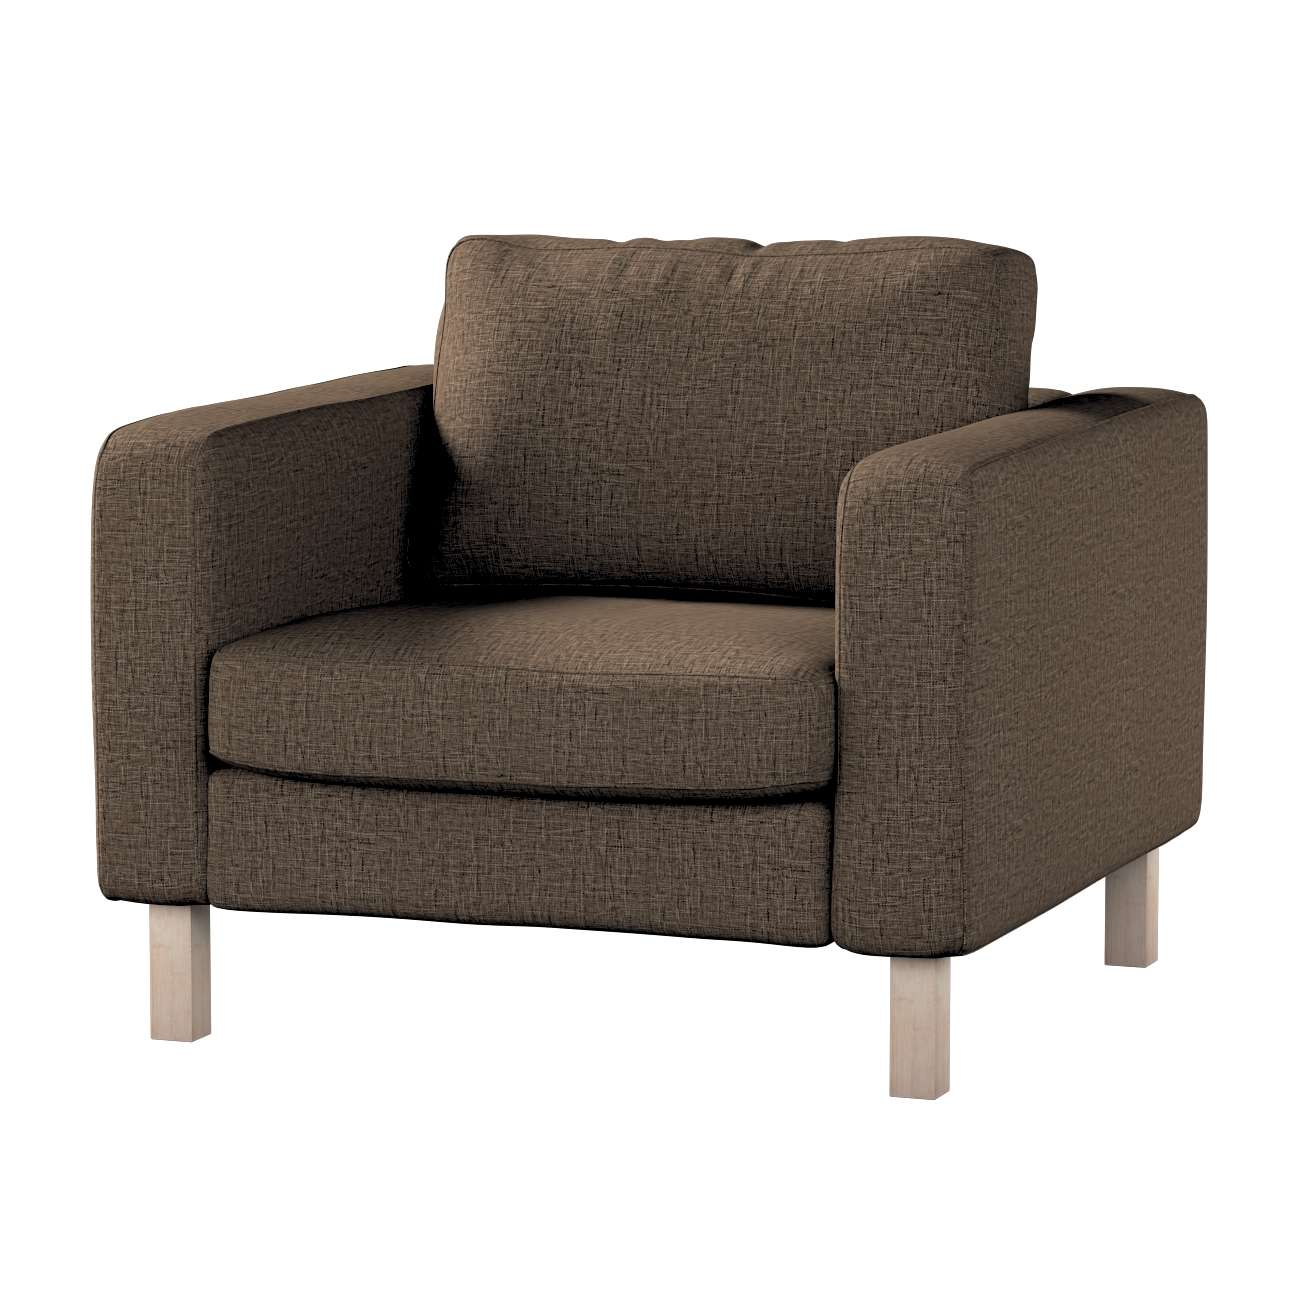 Karlstad armchair cover Karlstad armchair cover in collection Living, fabric: 106-92